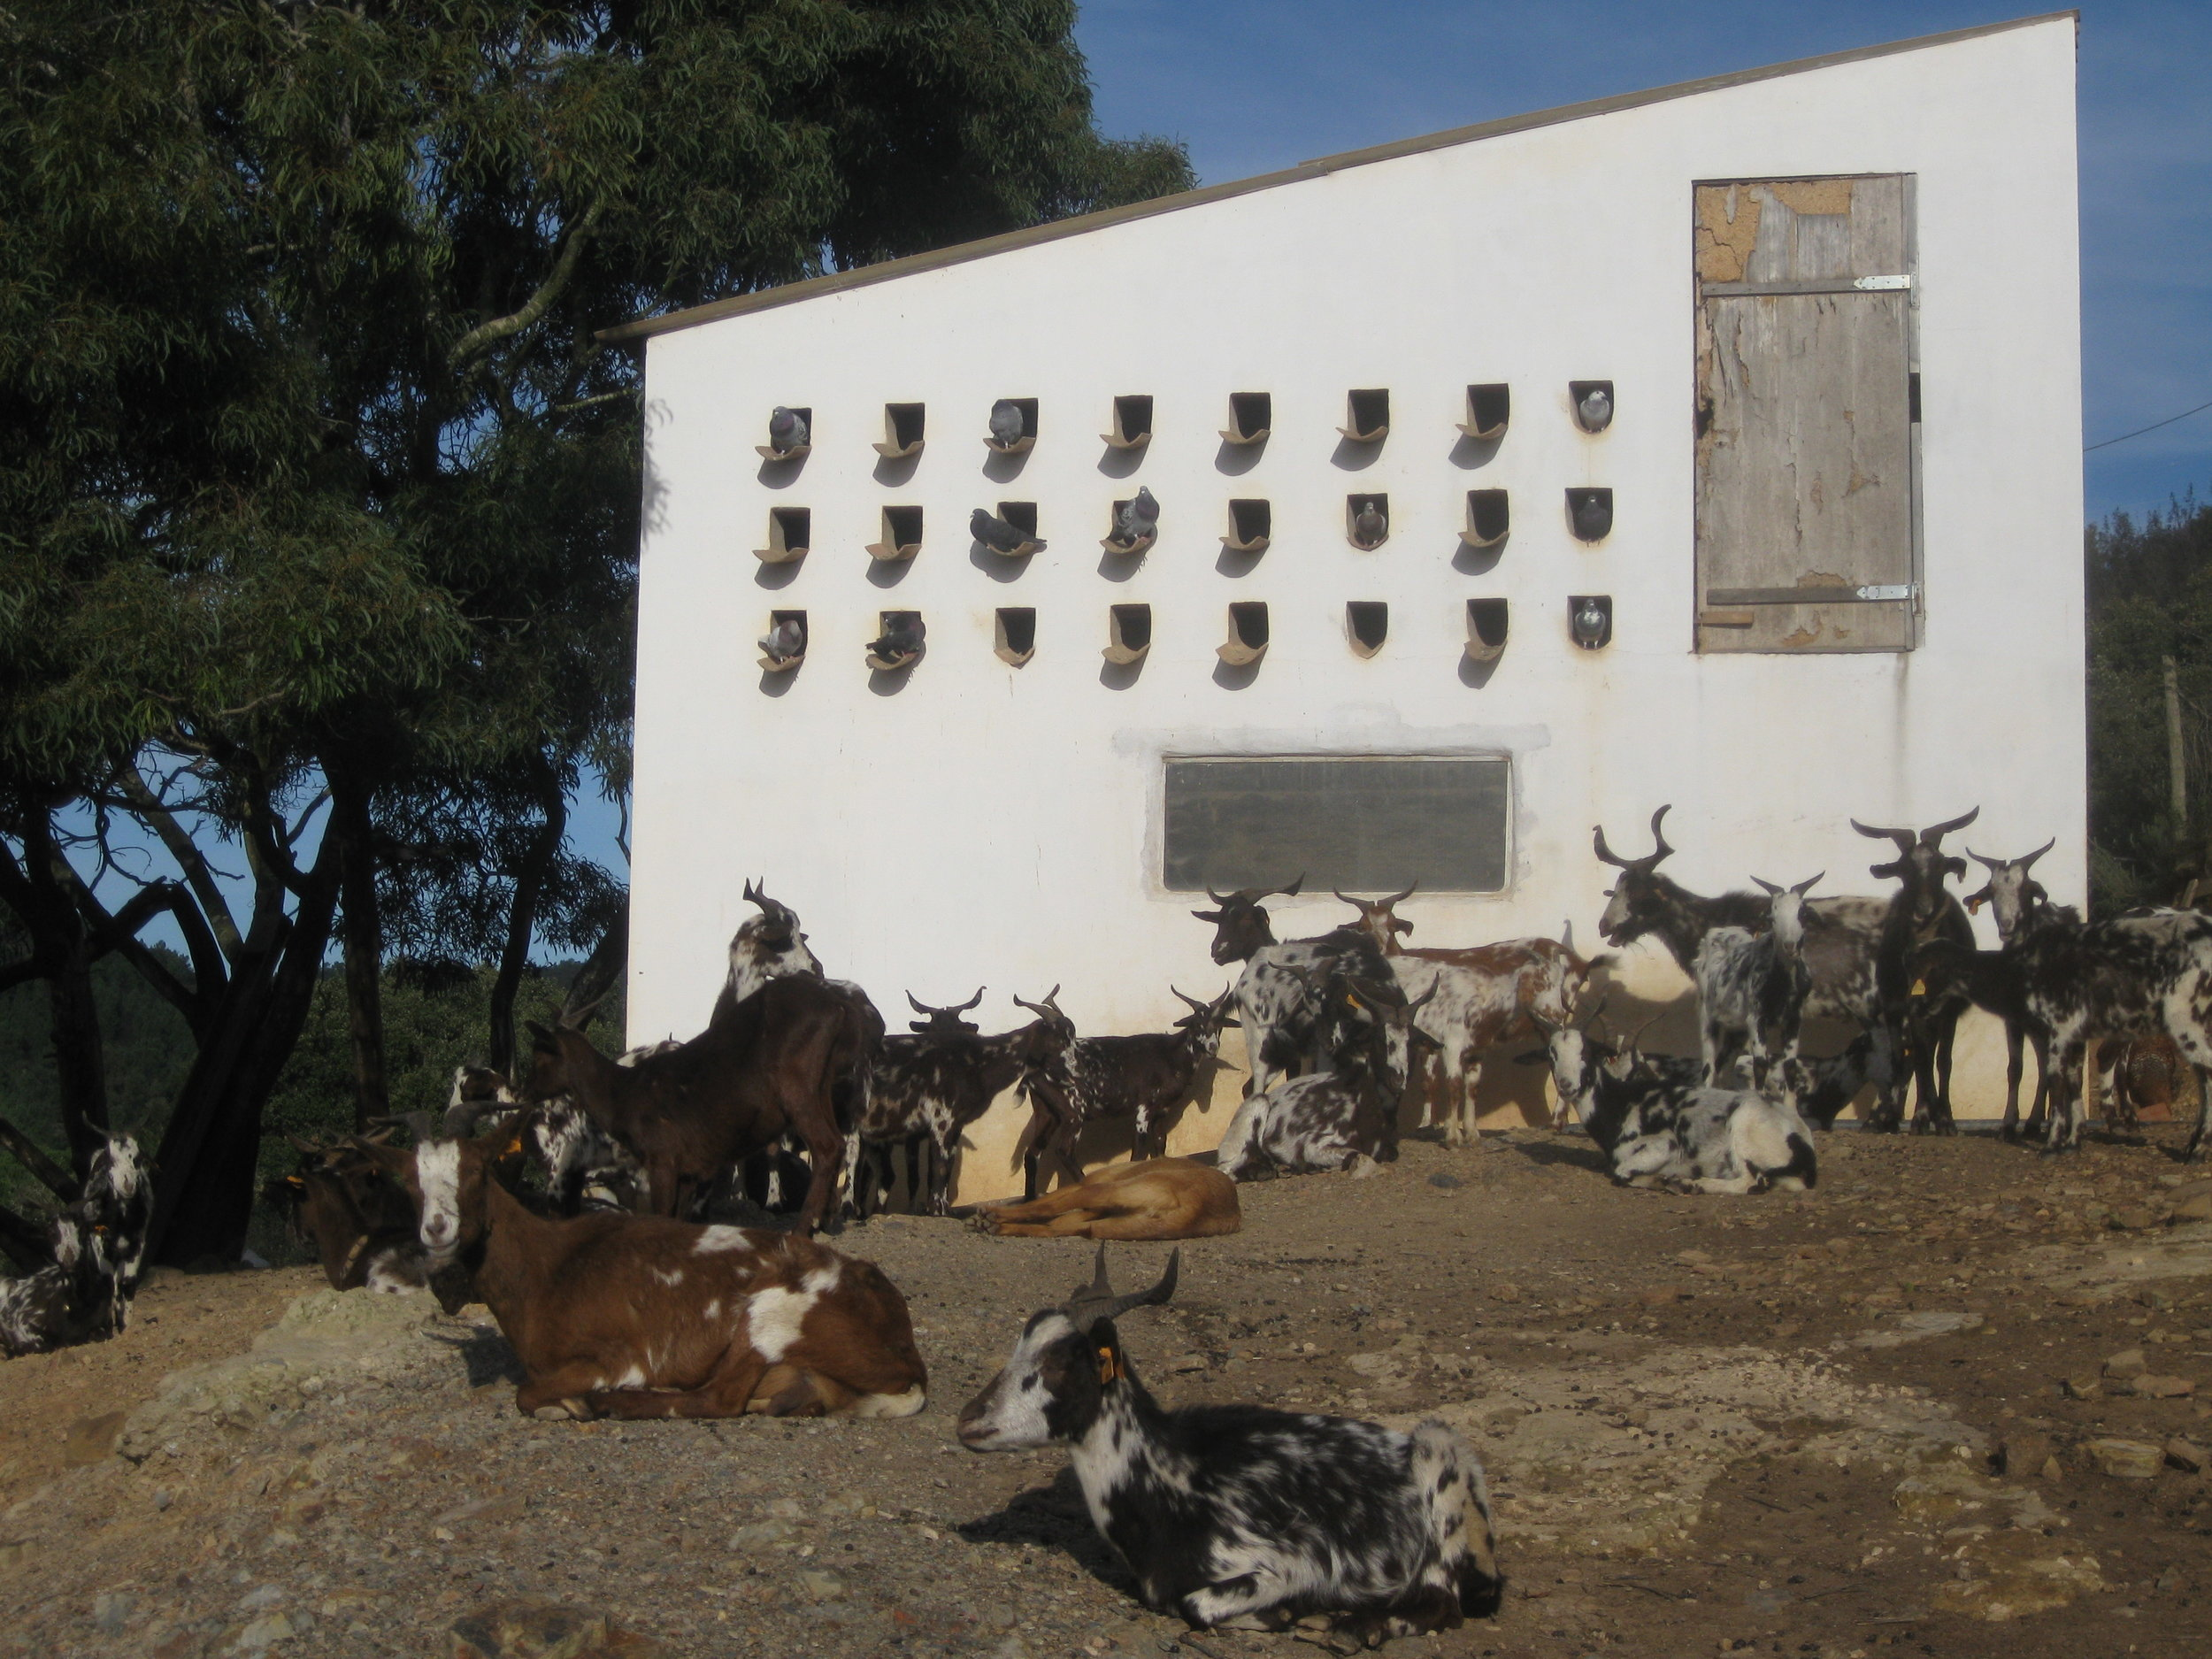 Traditional goat barn in the south of Portugal, 2010.